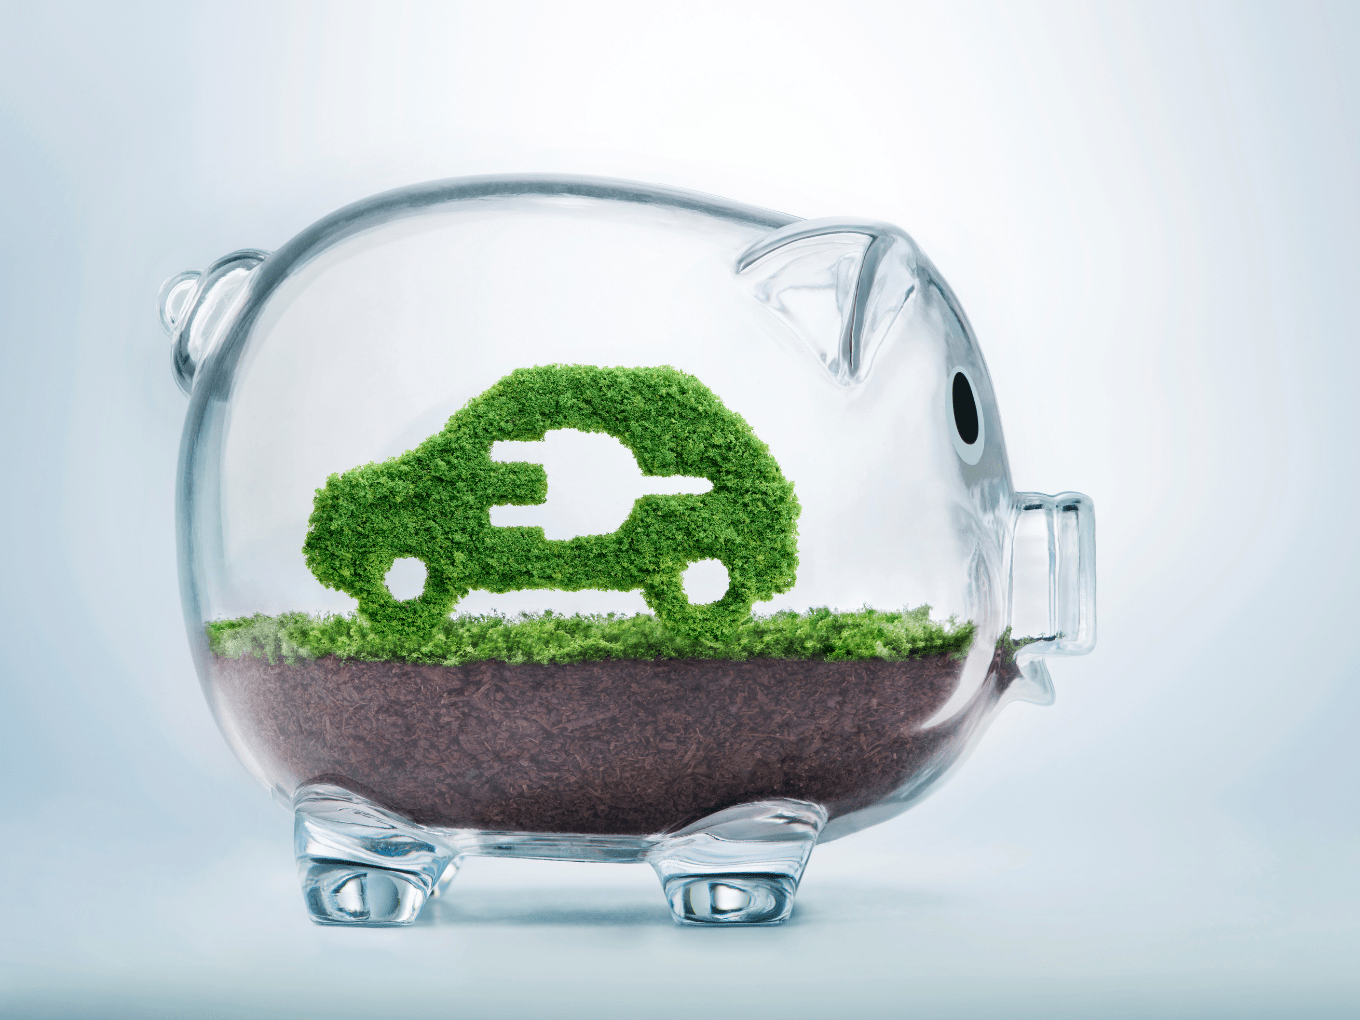 Sachin Bansal's Navi Mutual Fund Files Papers For Electric Vehicle Fund With SEBI